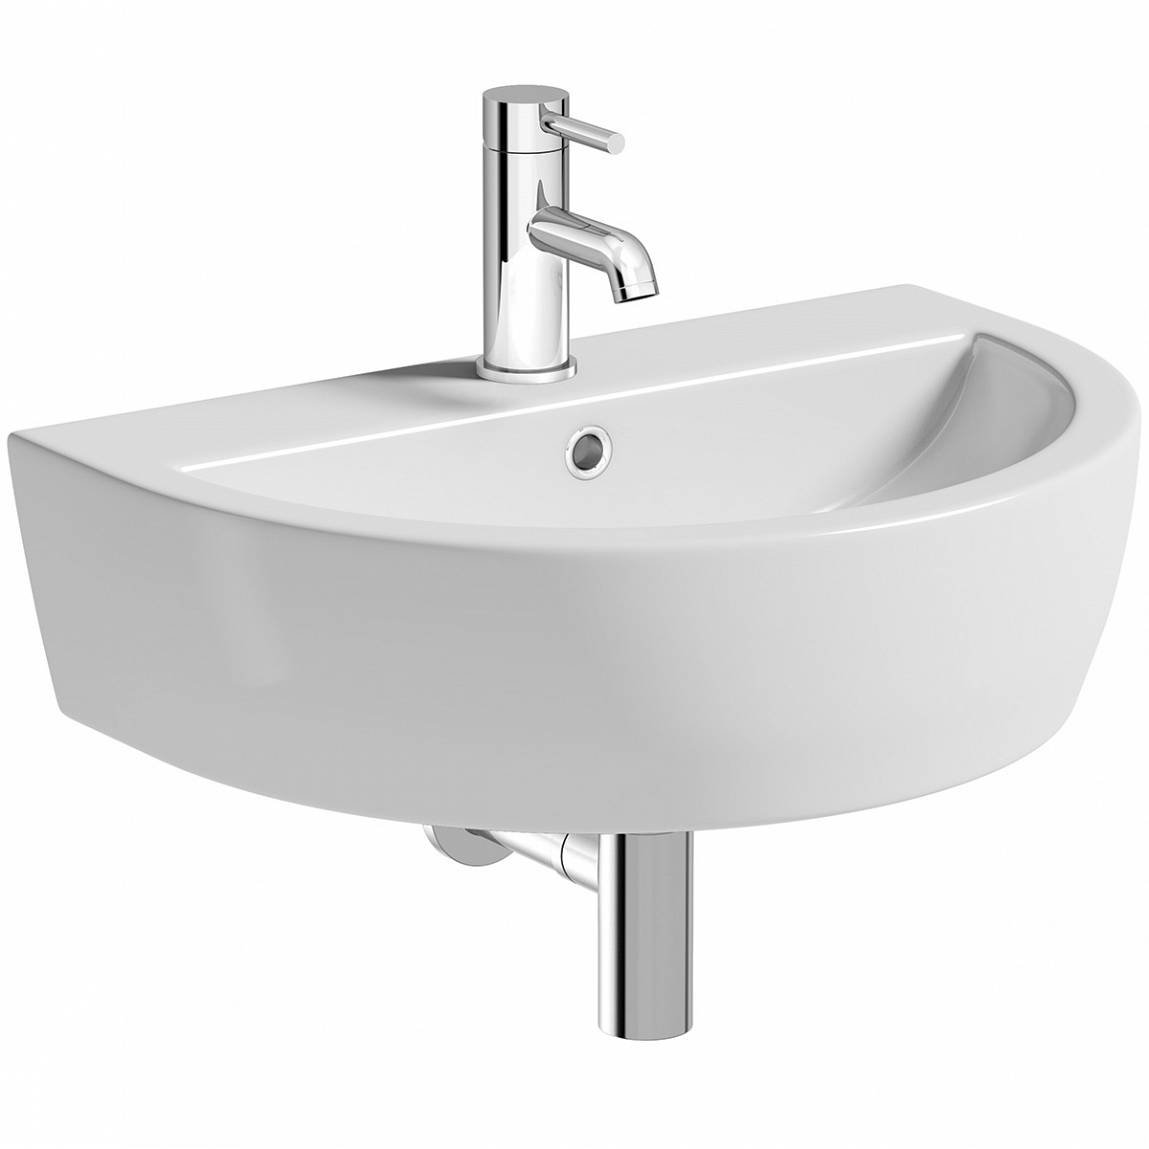 Image of Arc Wall Mounted Basin Large Special Offer